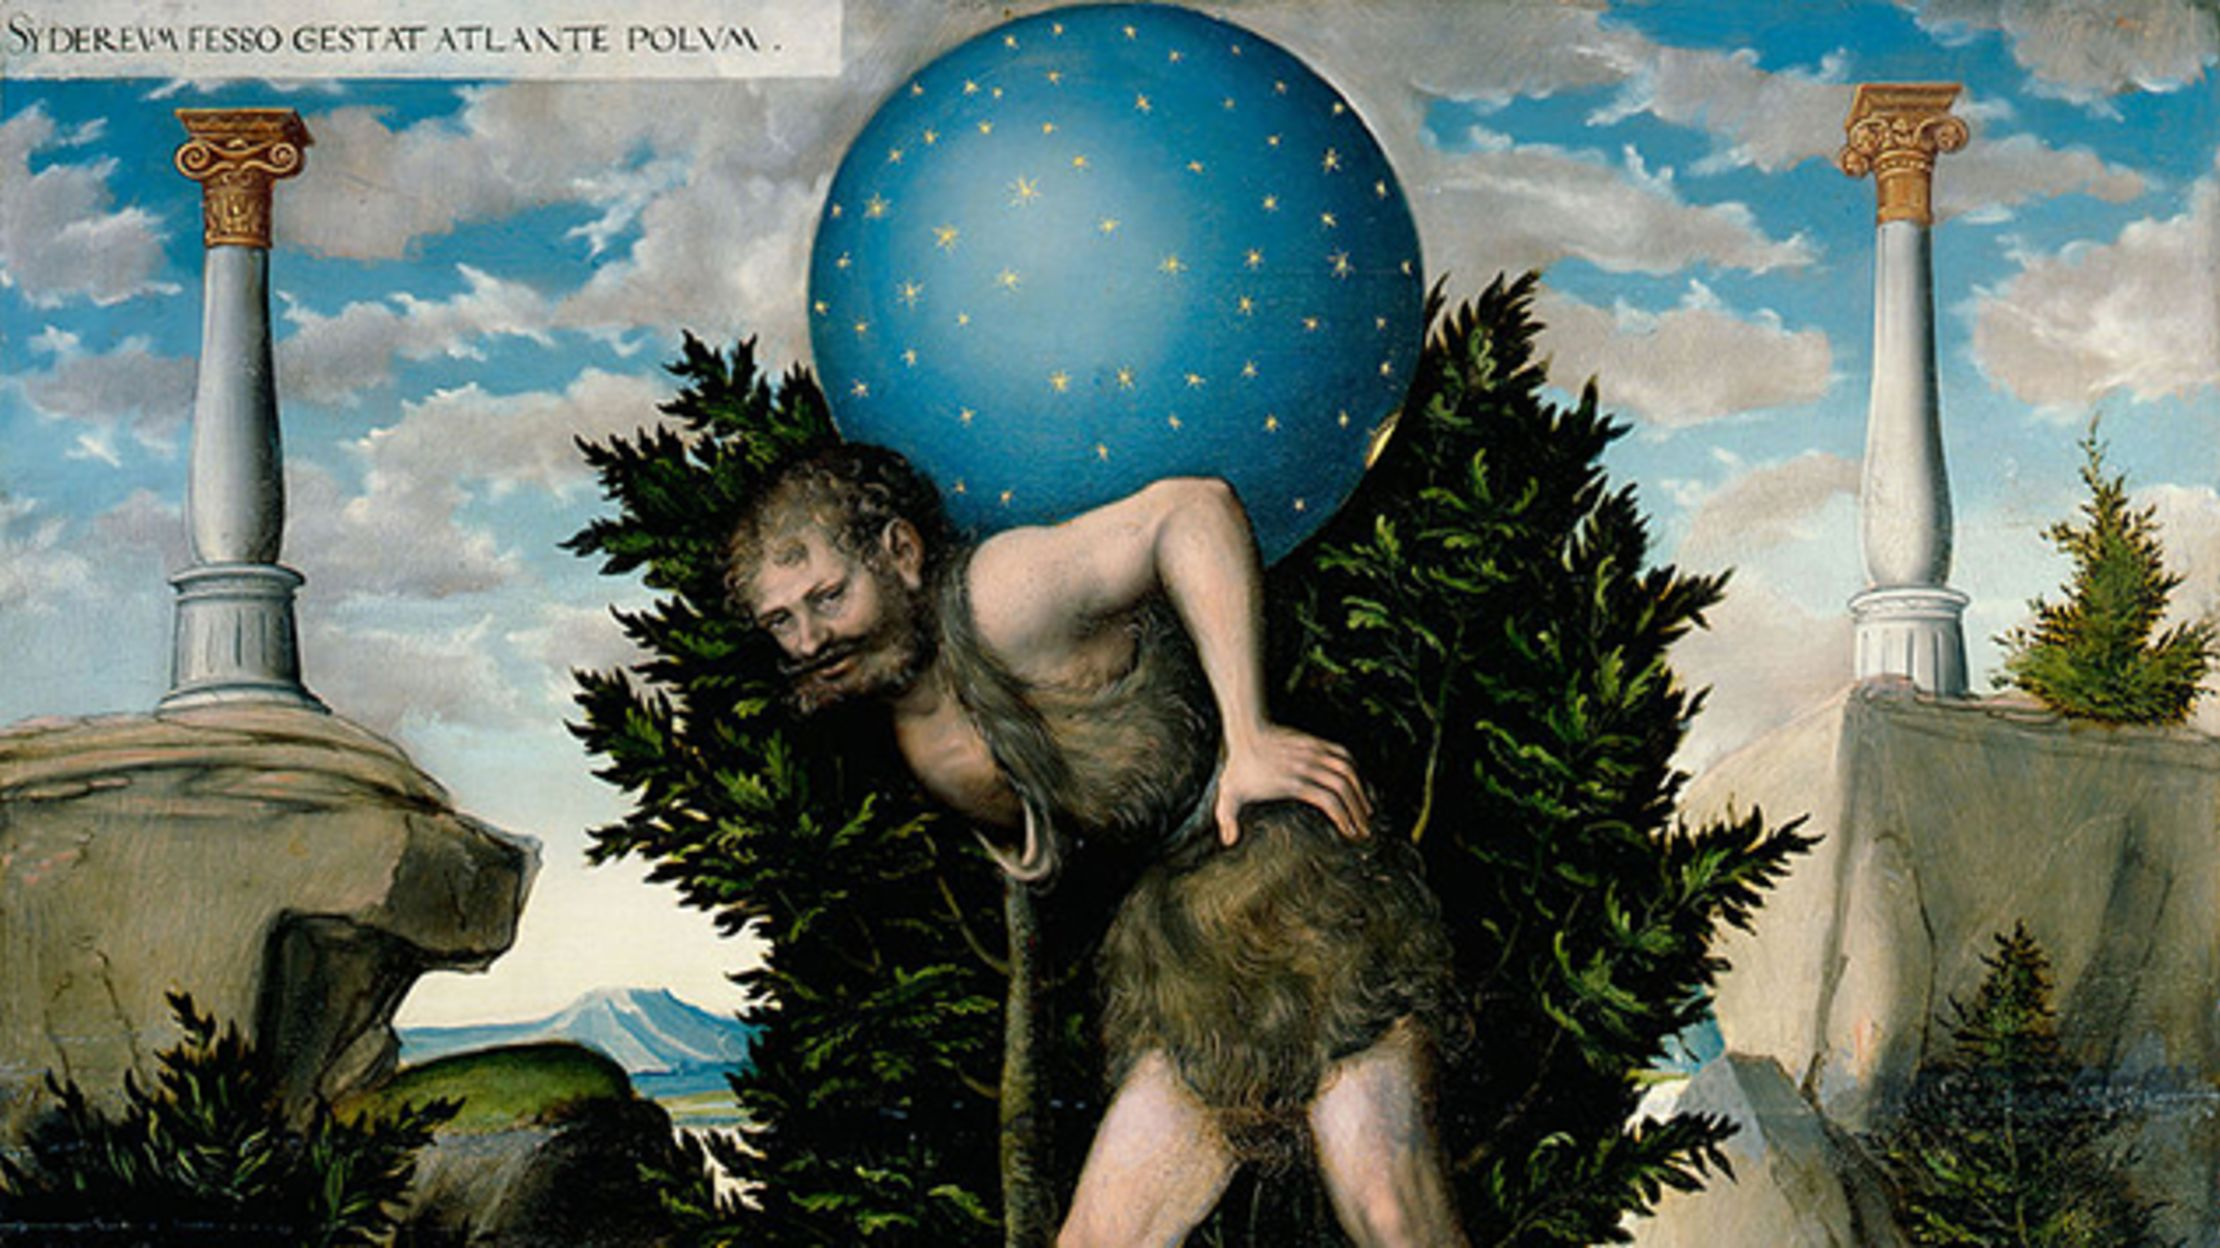 10 Mythical Giants From Around the World